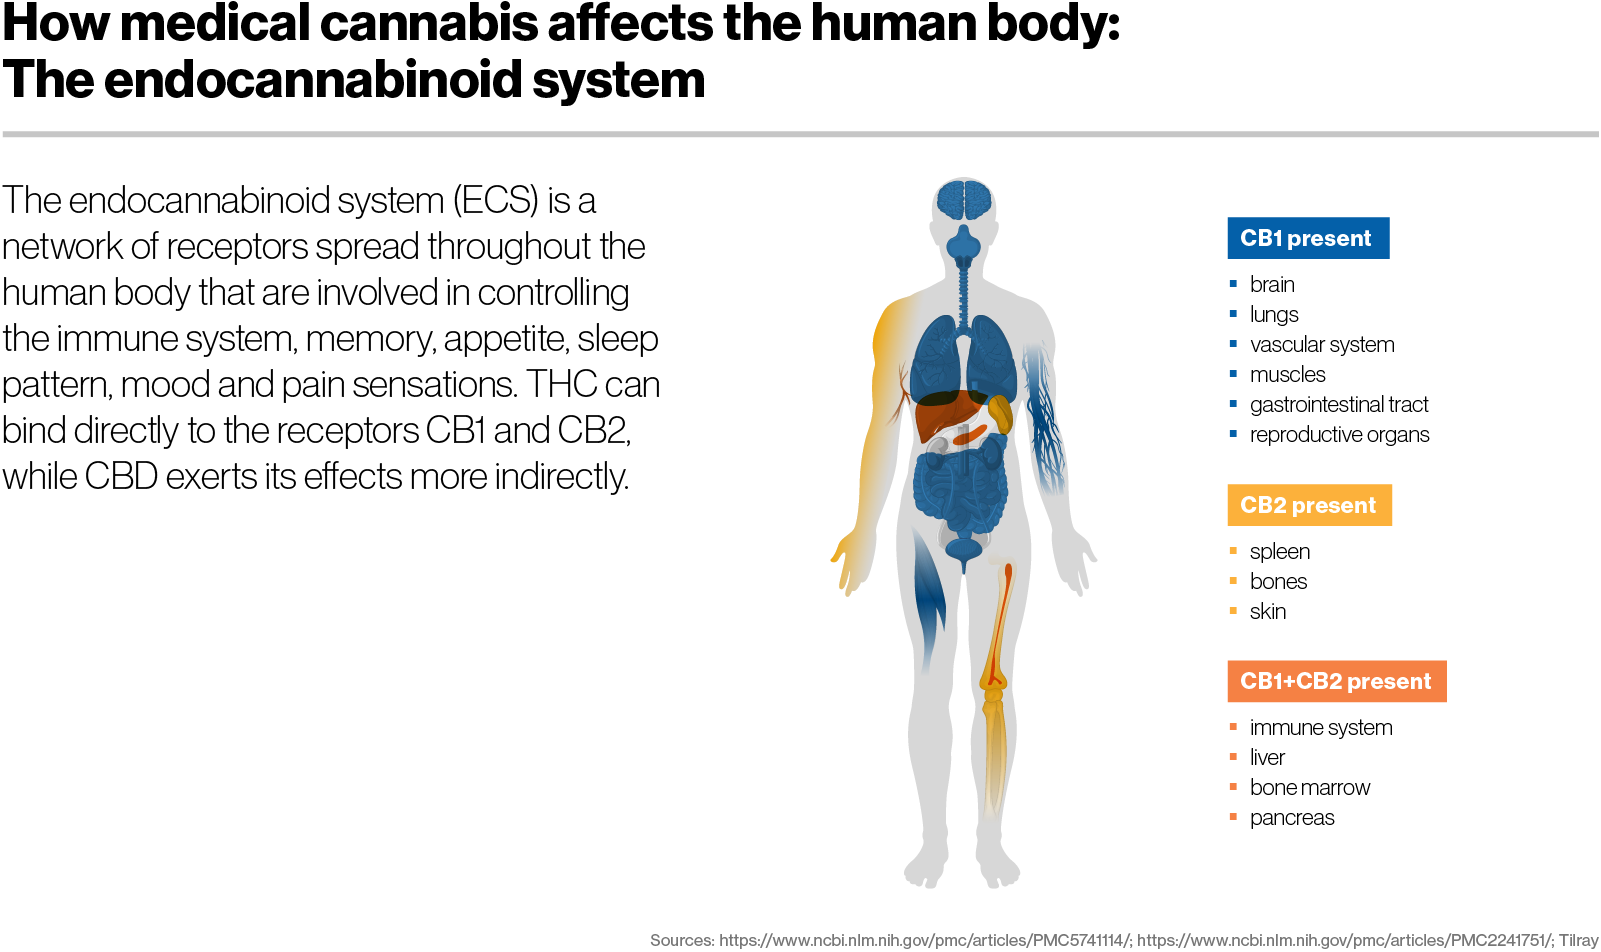 How medical cannabis affects the human body: The endocannabinoid system